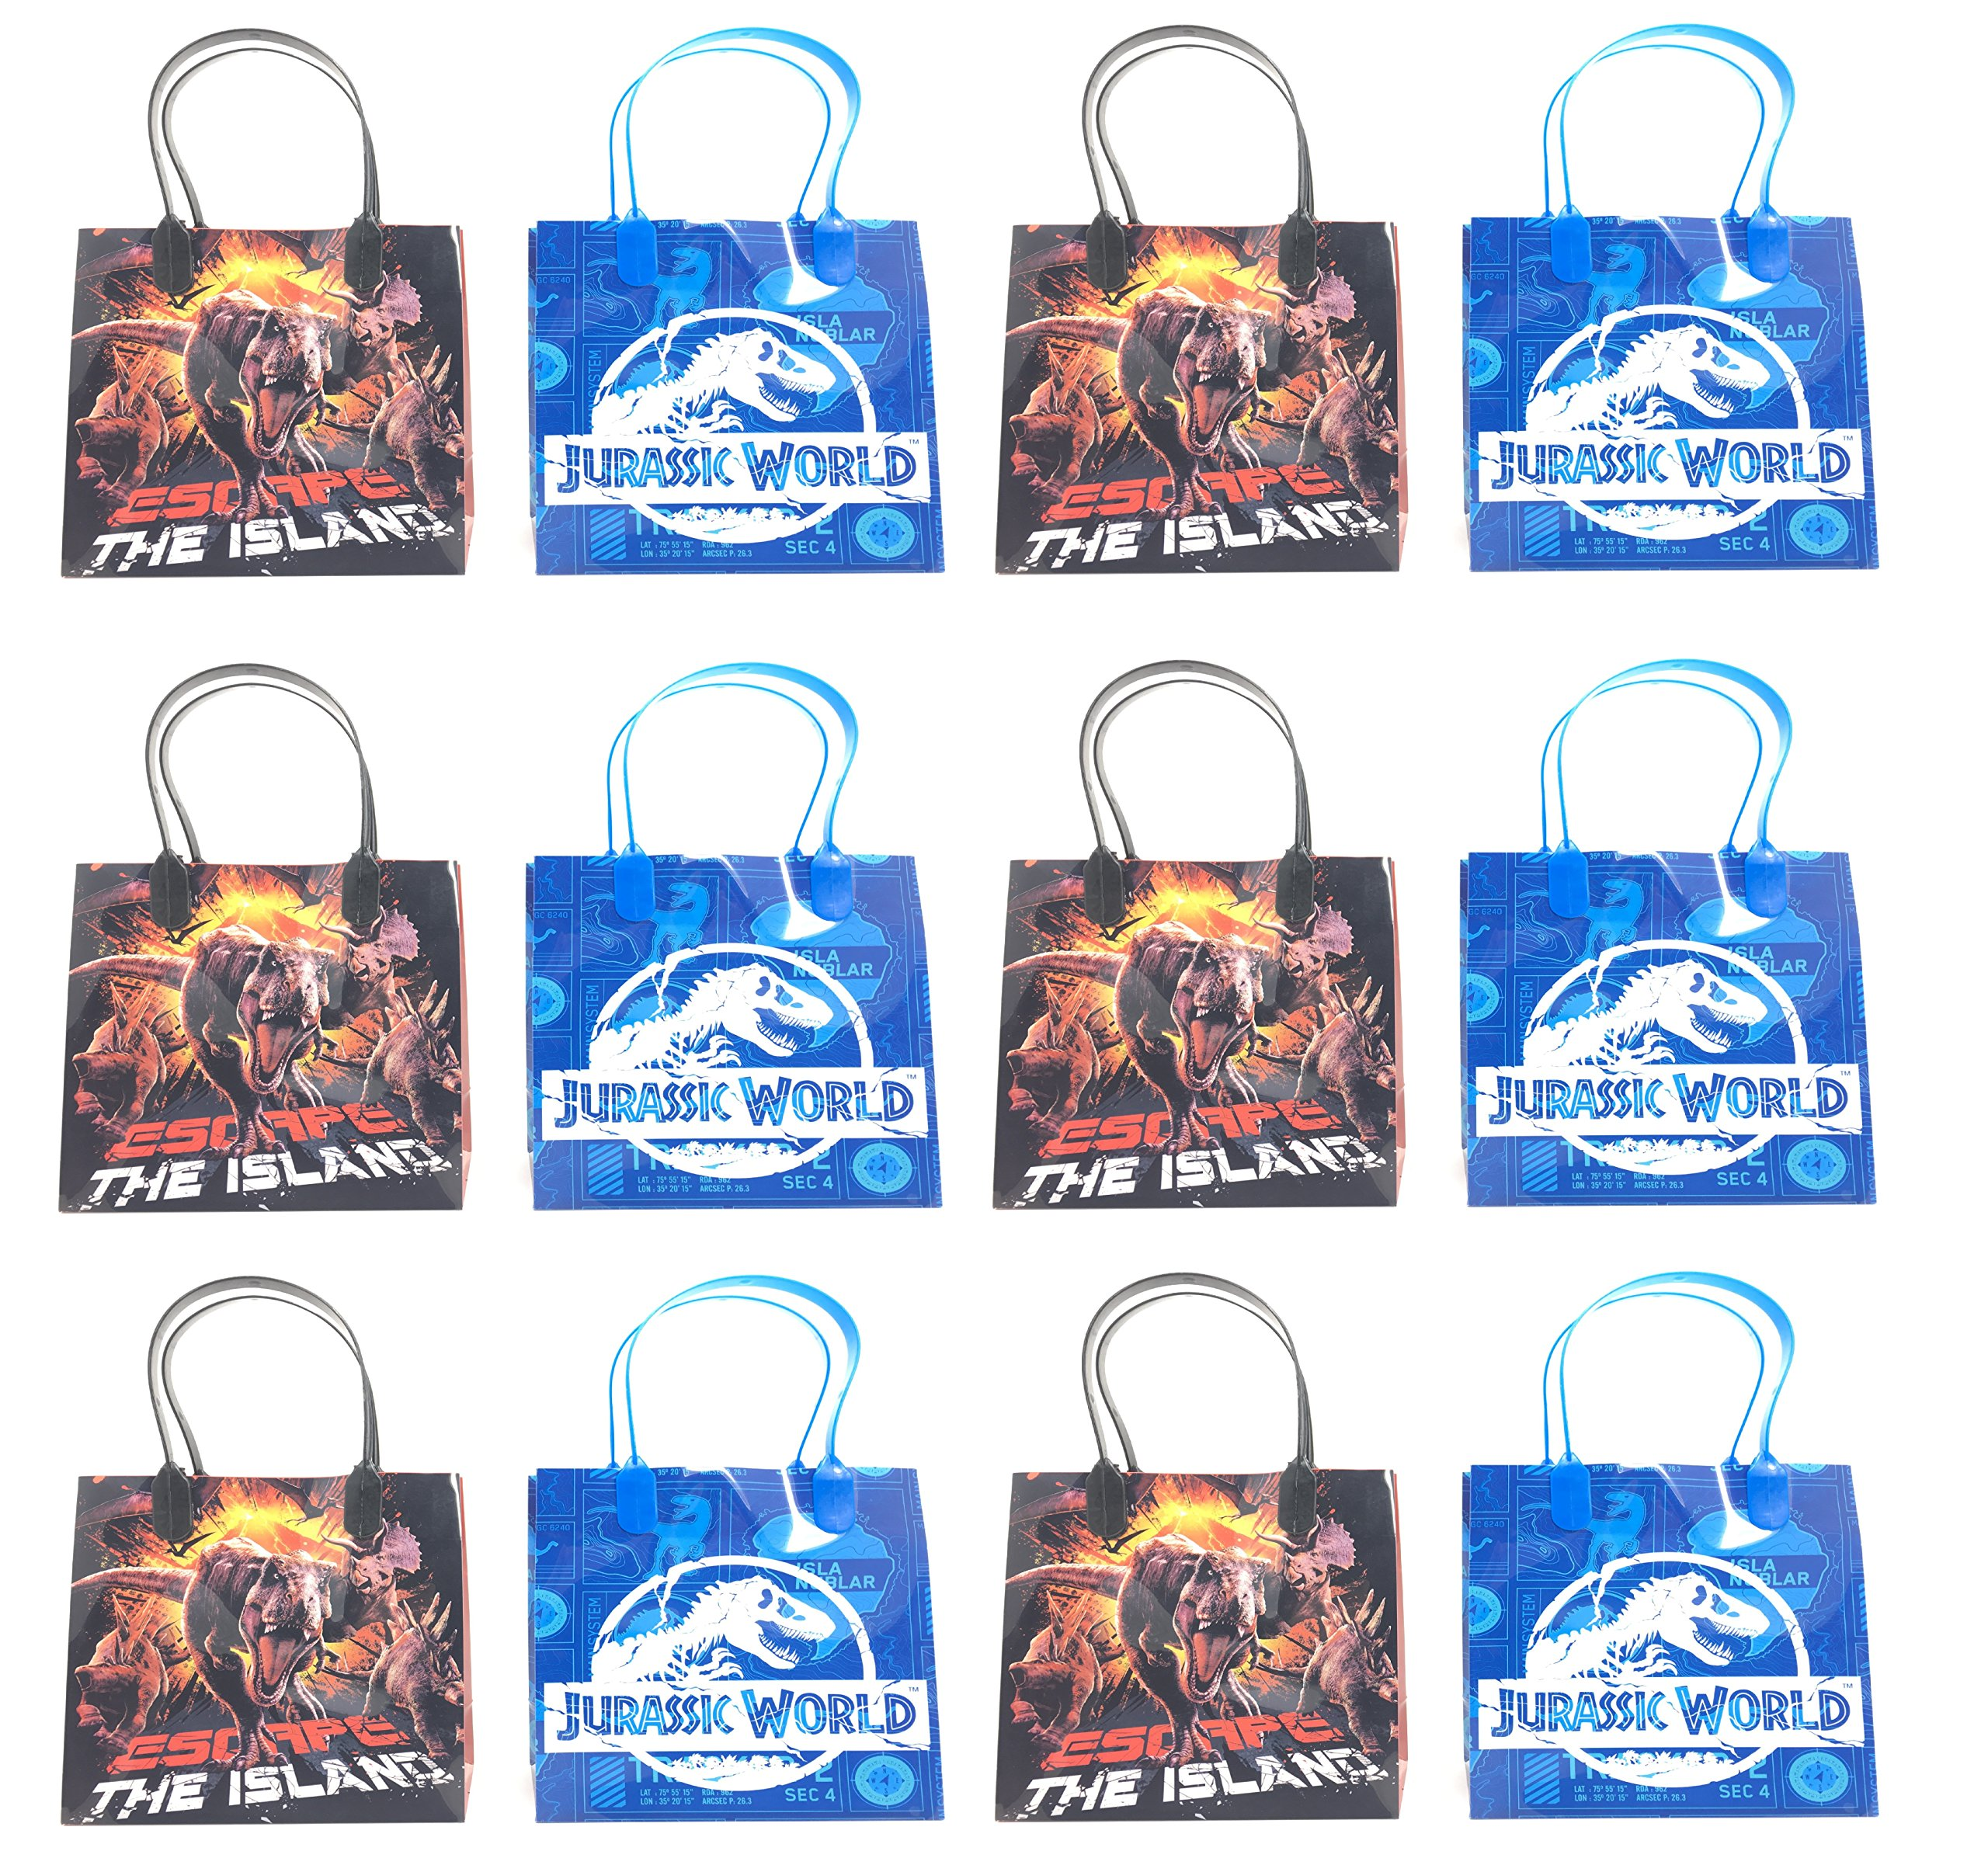 12pc Jurassic World''THE ISLAND'' Party Goodie Bags Party Favor Bag Gift Bags … by Jurassic World